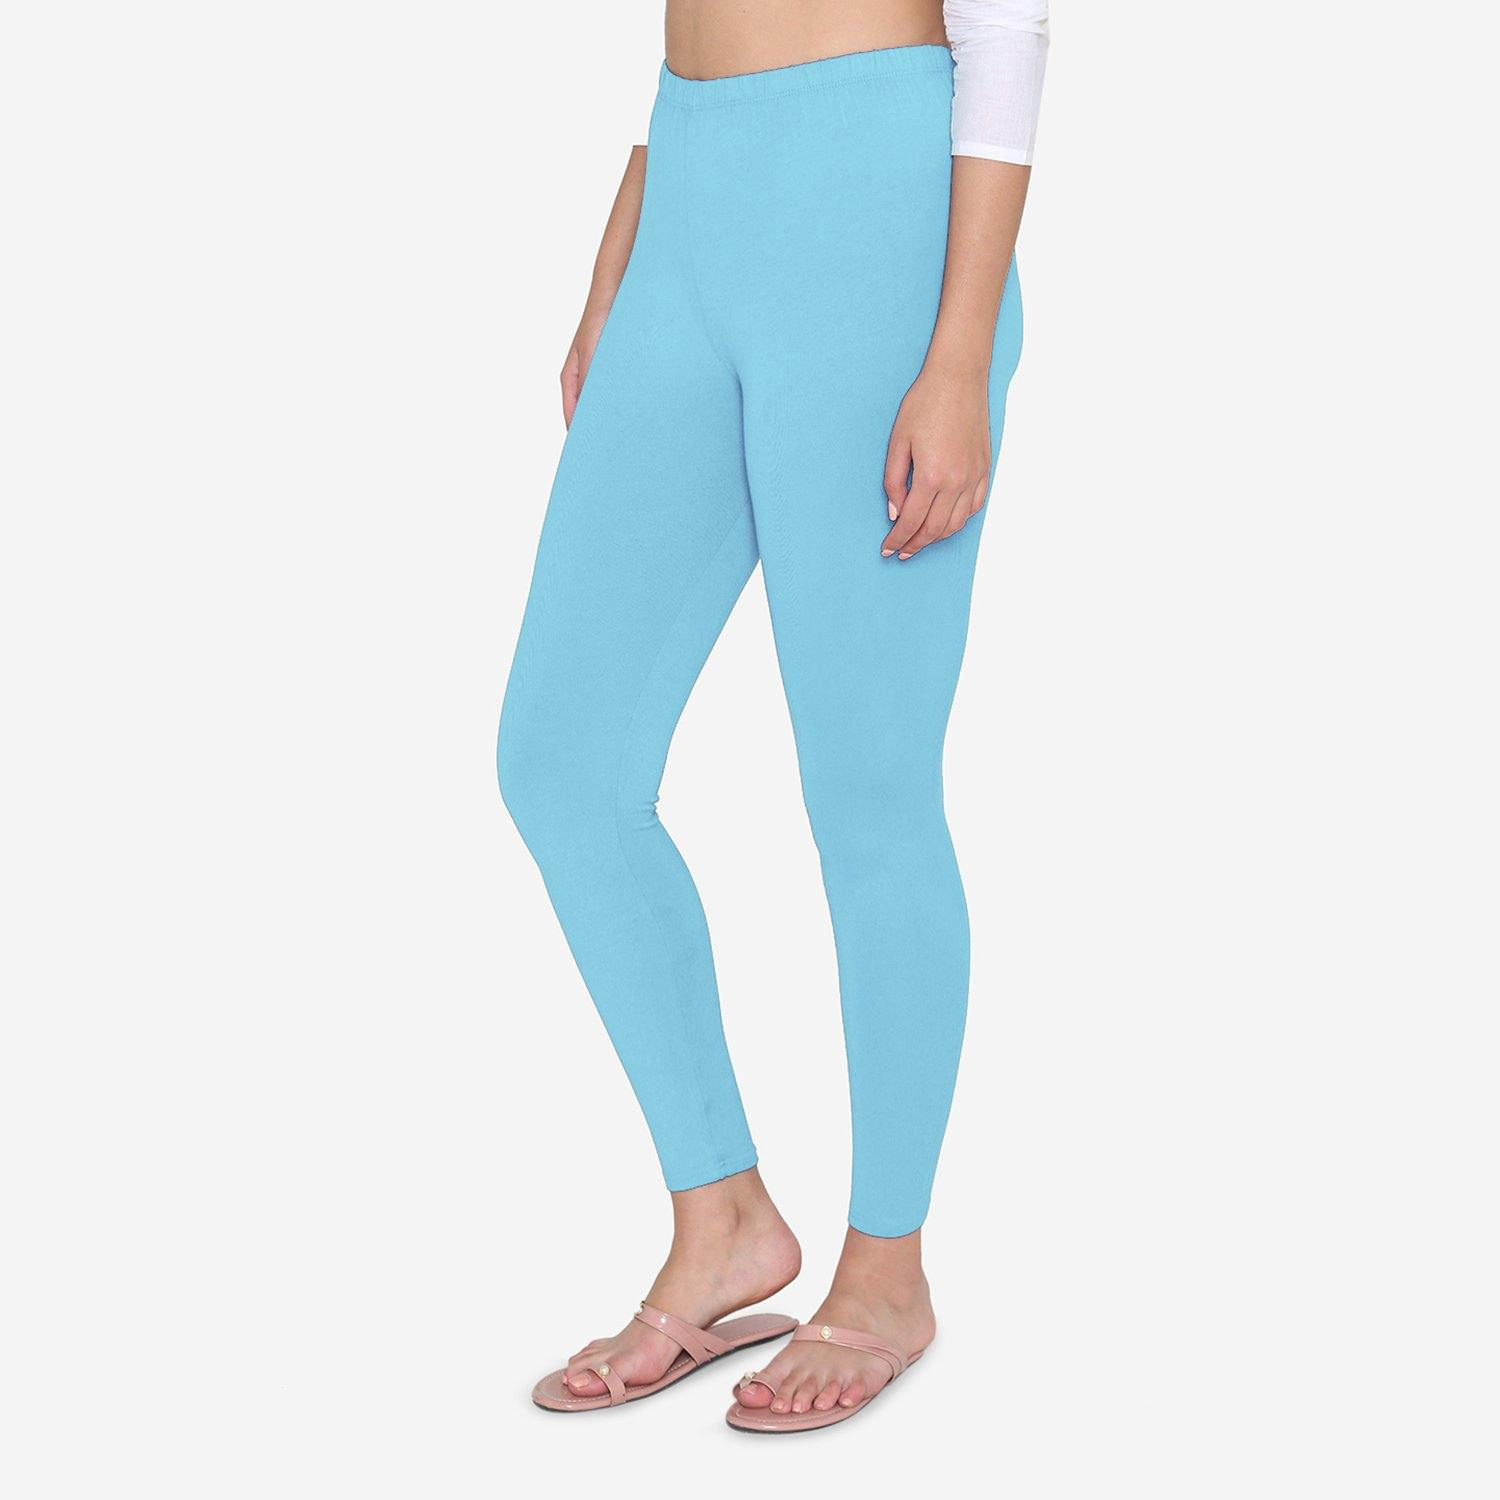 Vami Women's Cotton Stretchable Ankle Leggings - Aquamarine